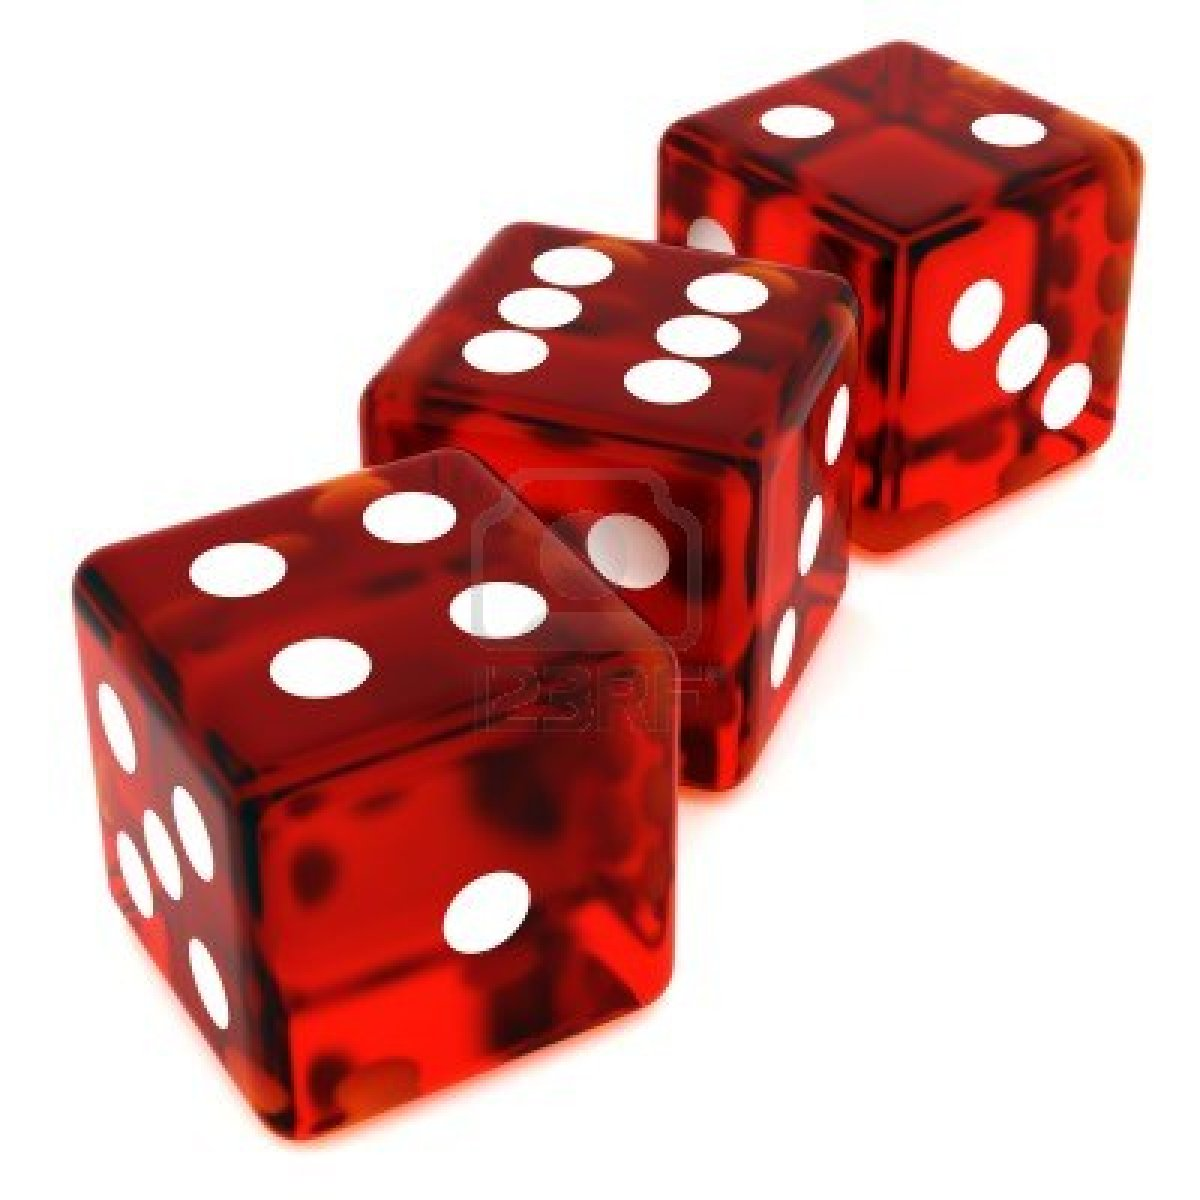 Free Dice, Download Free Clip Art, Free Clip Art on Clipart.